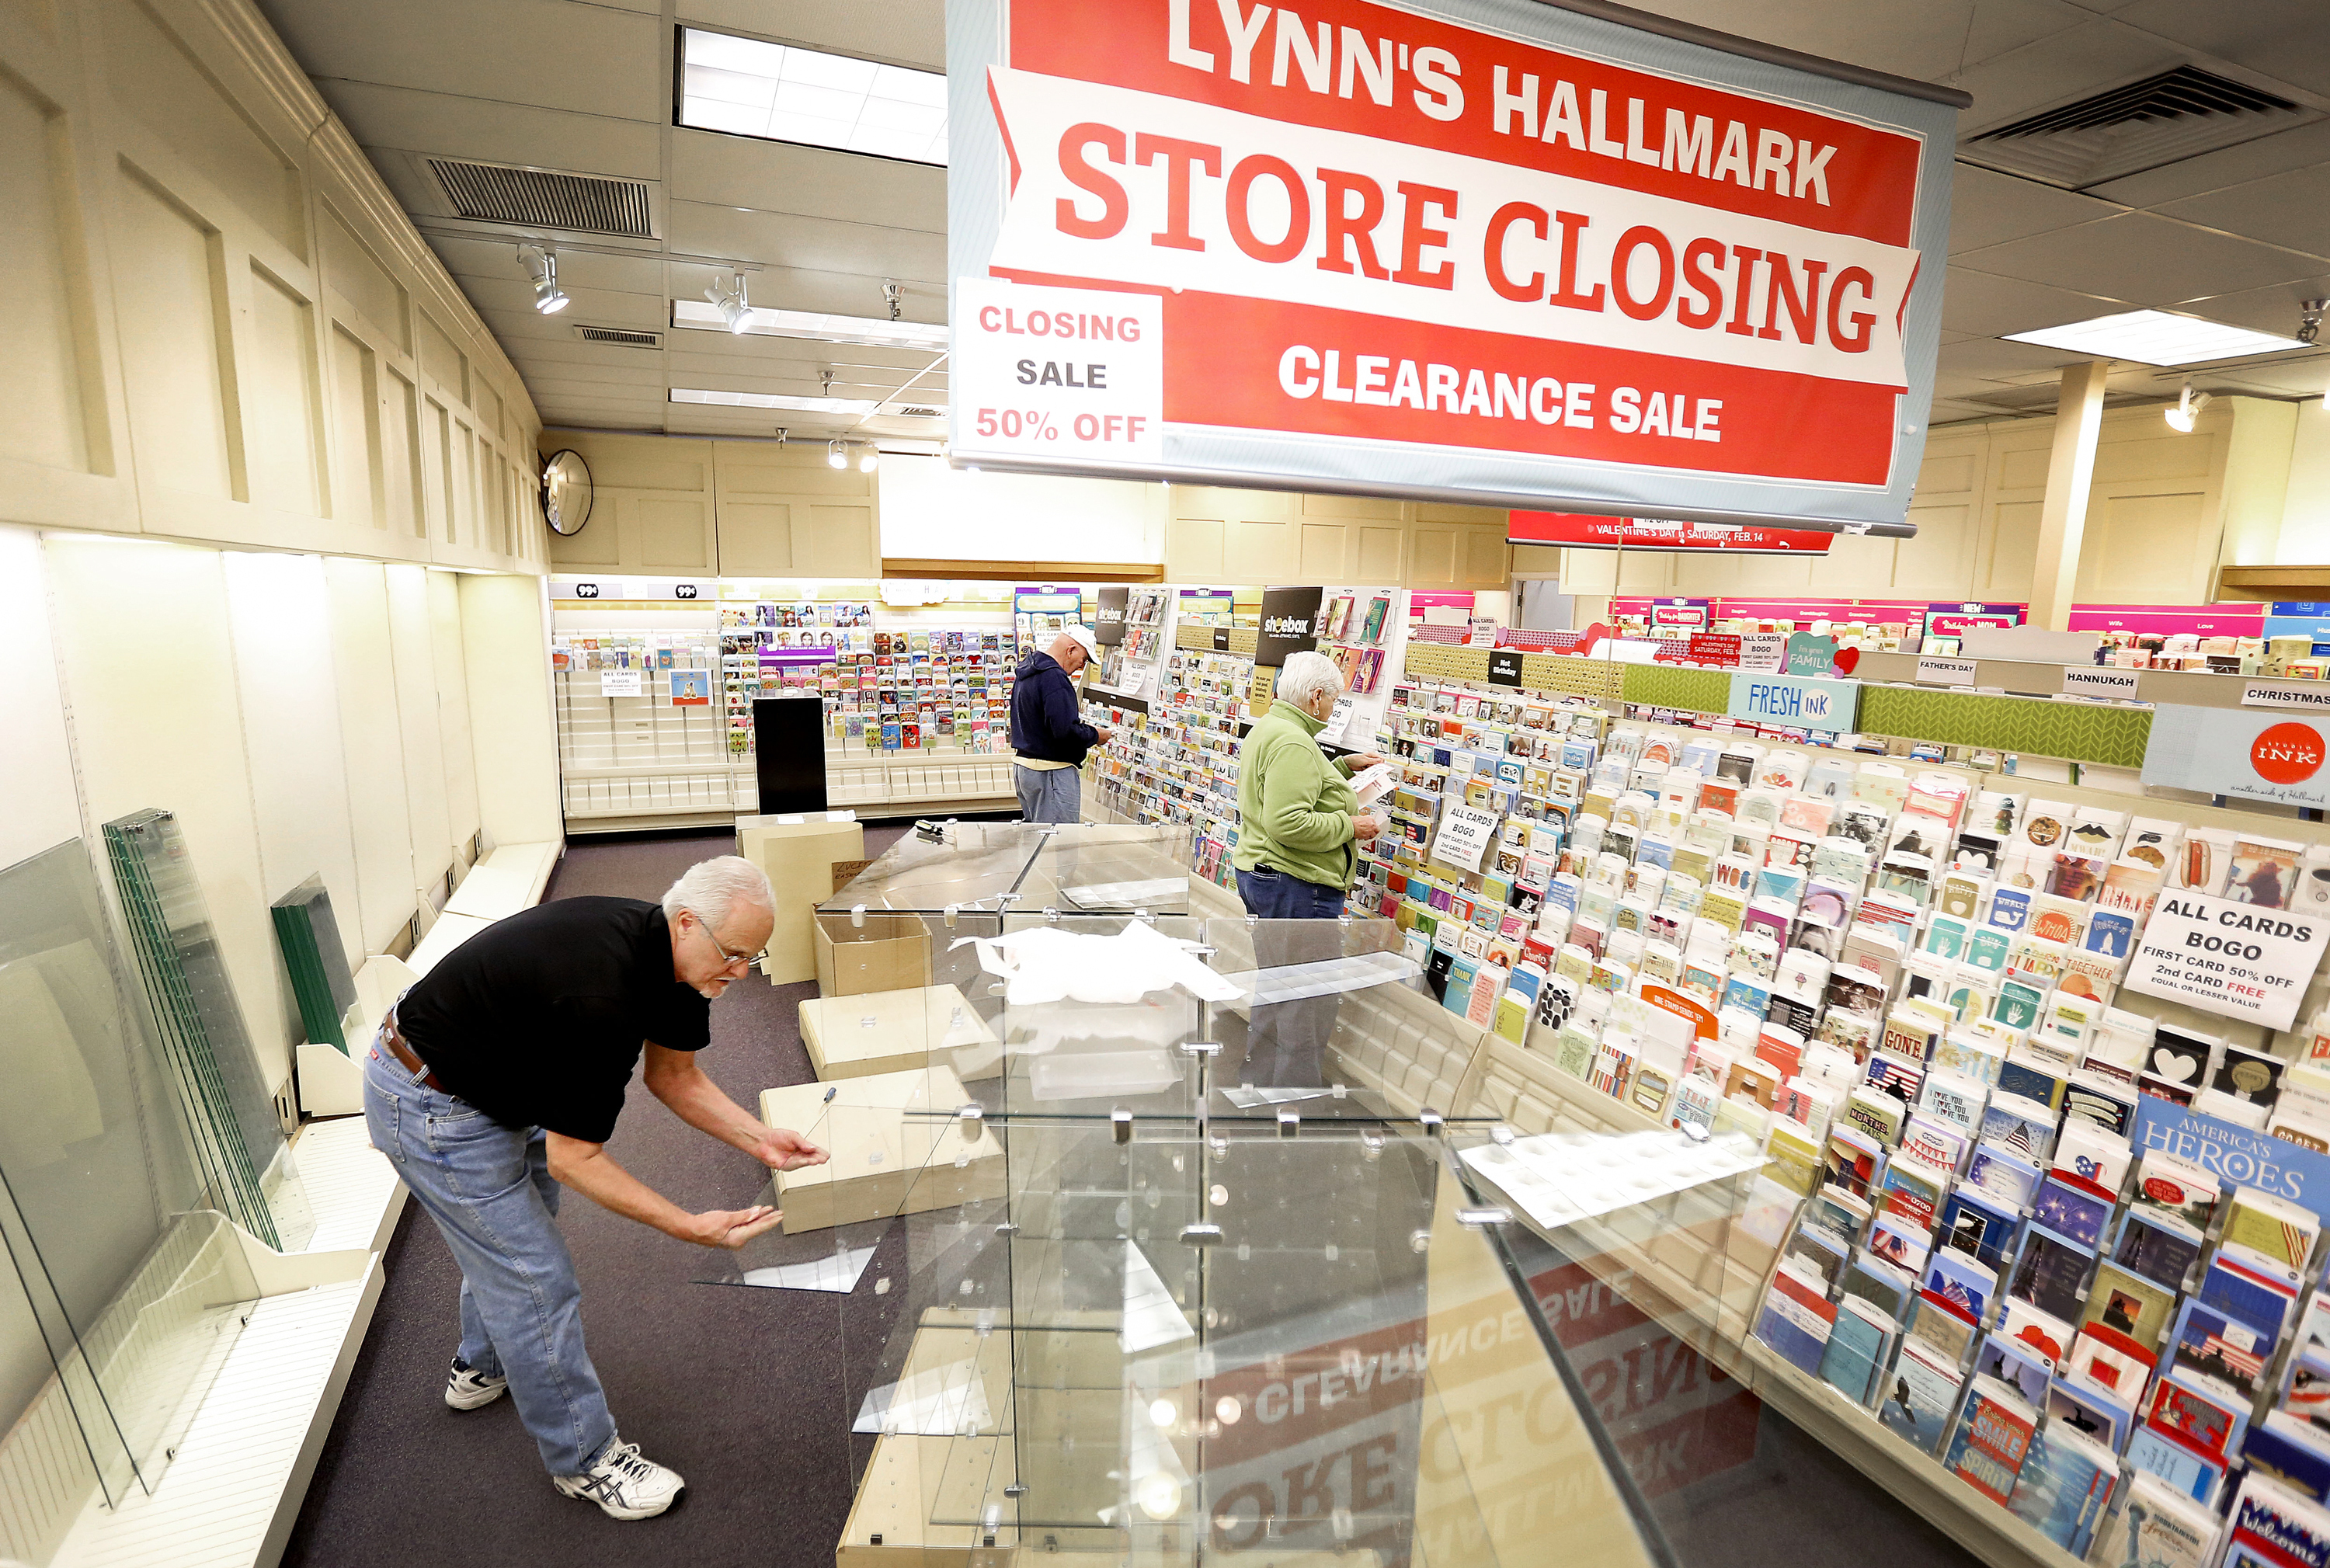 To Survive The Greeting Card Industry Will Have To Get